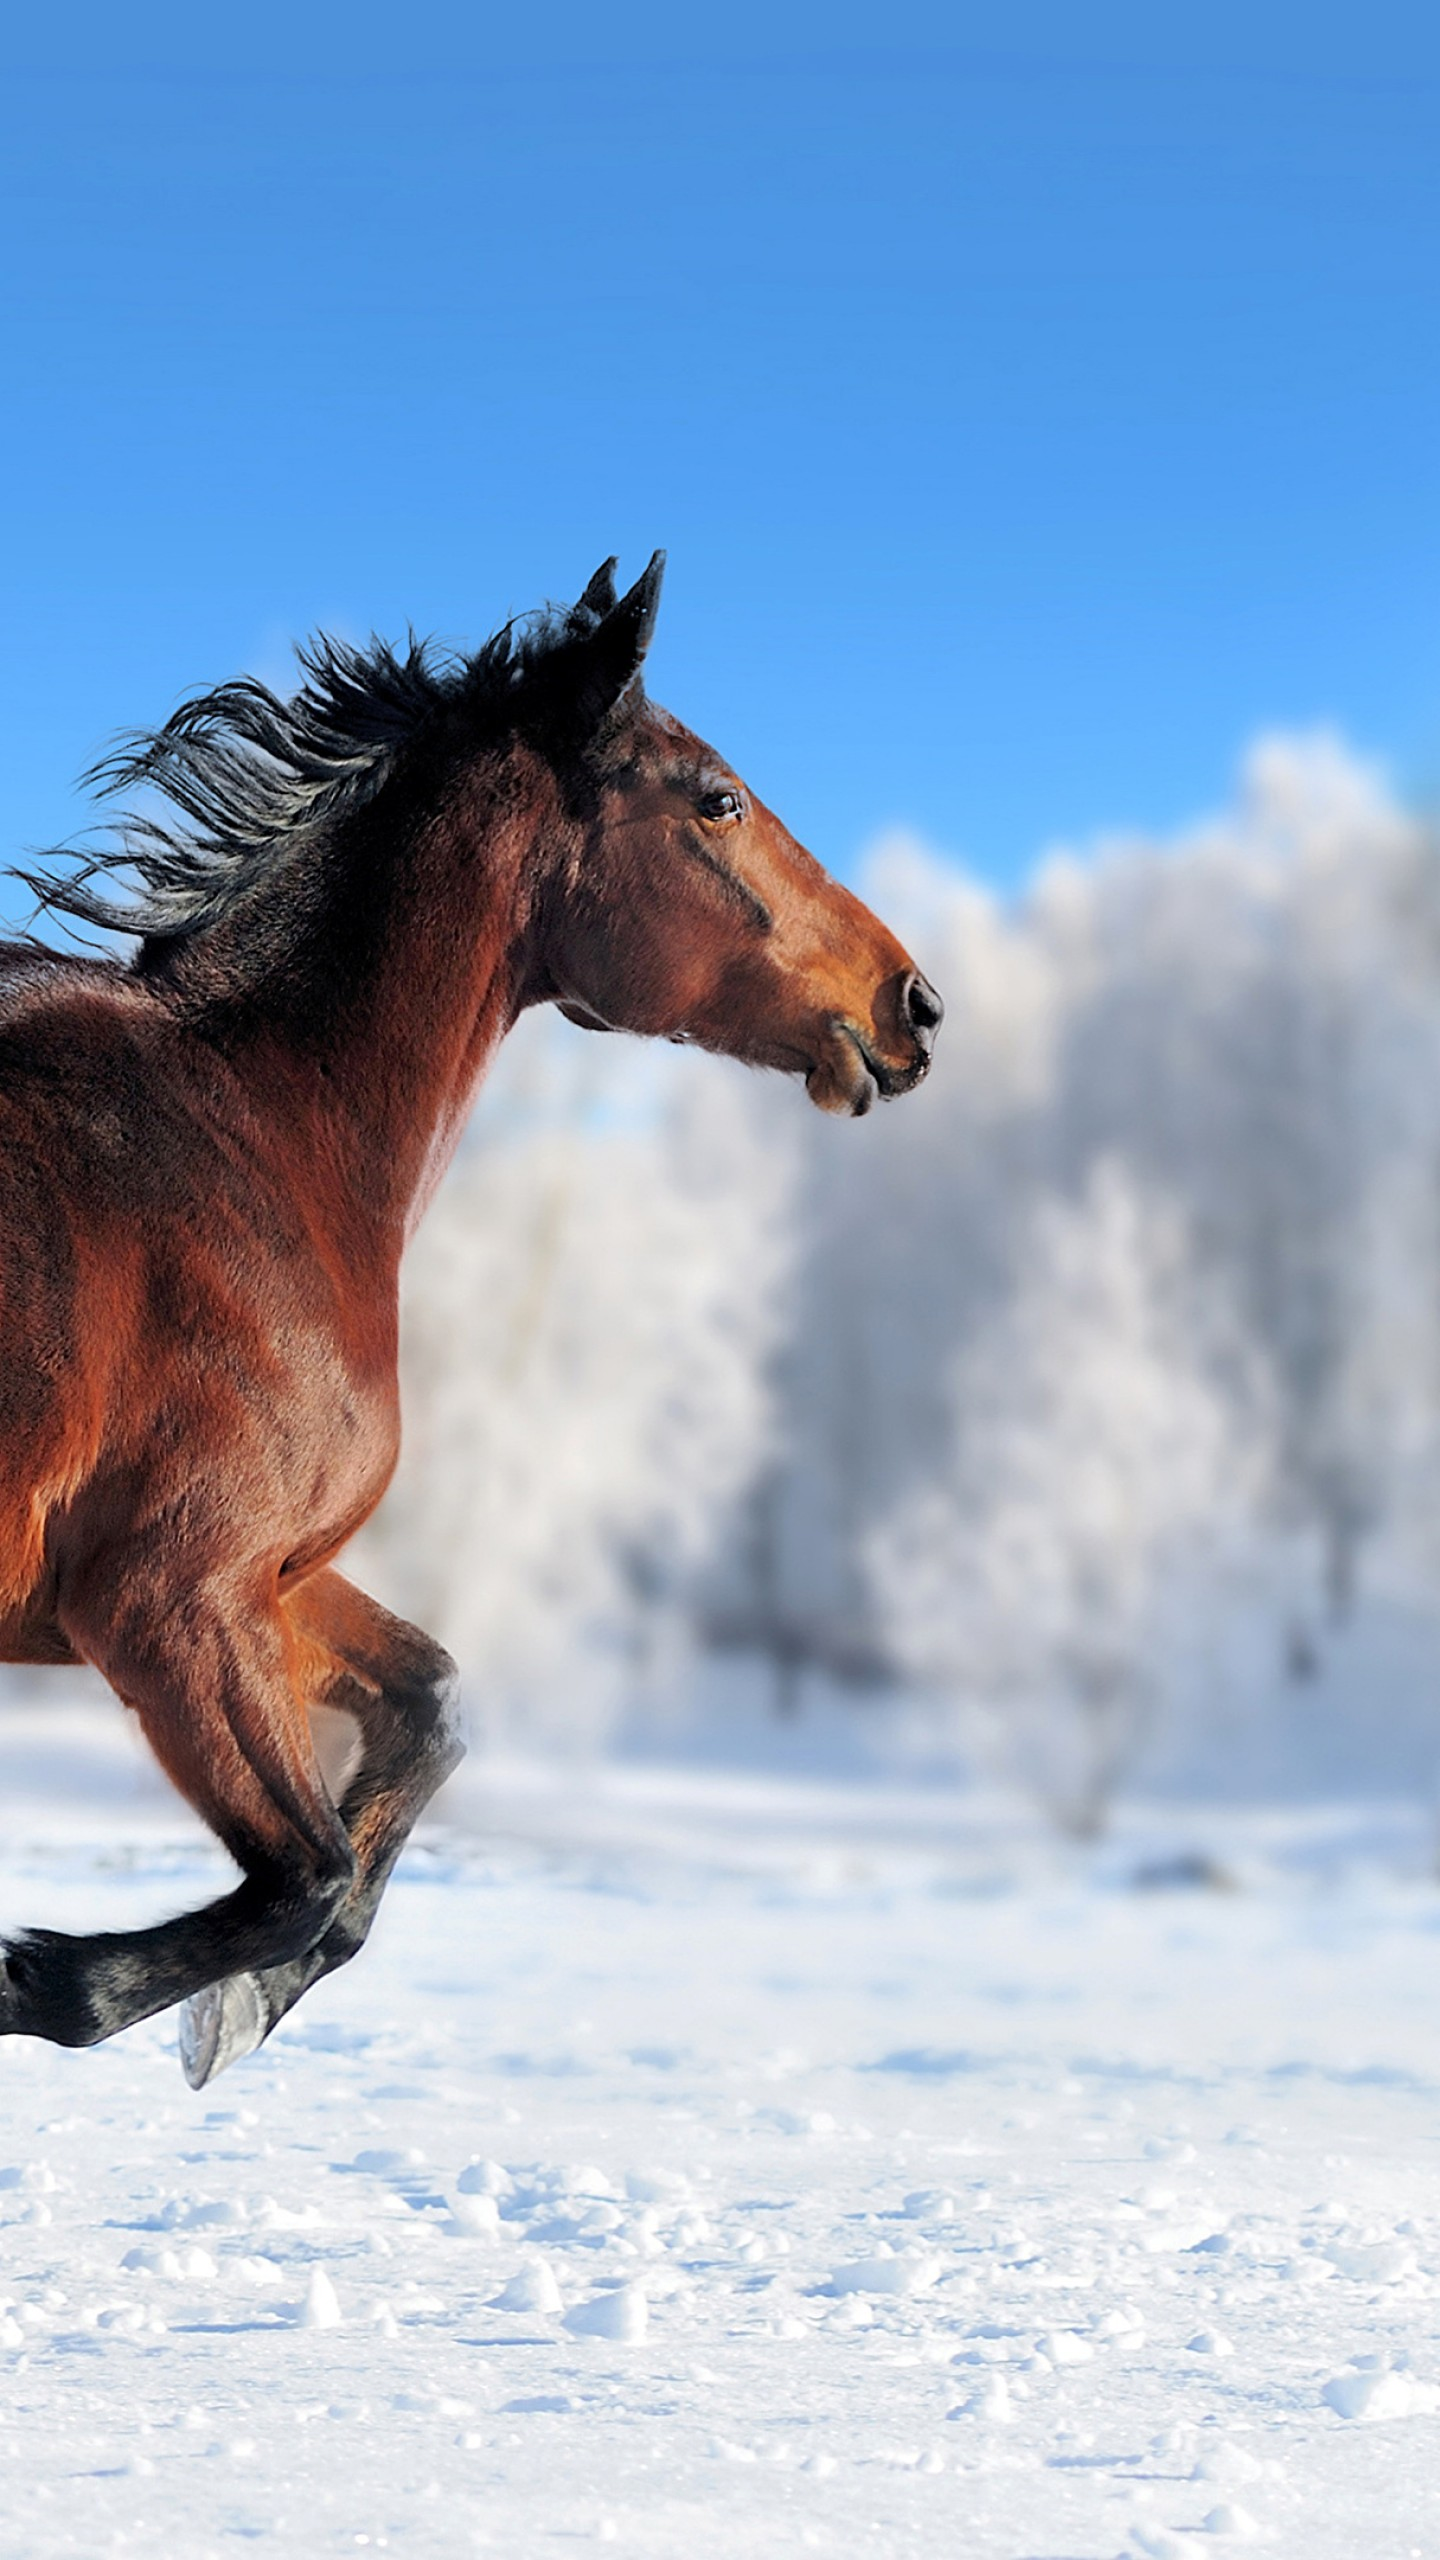 Animals And Pets Horses